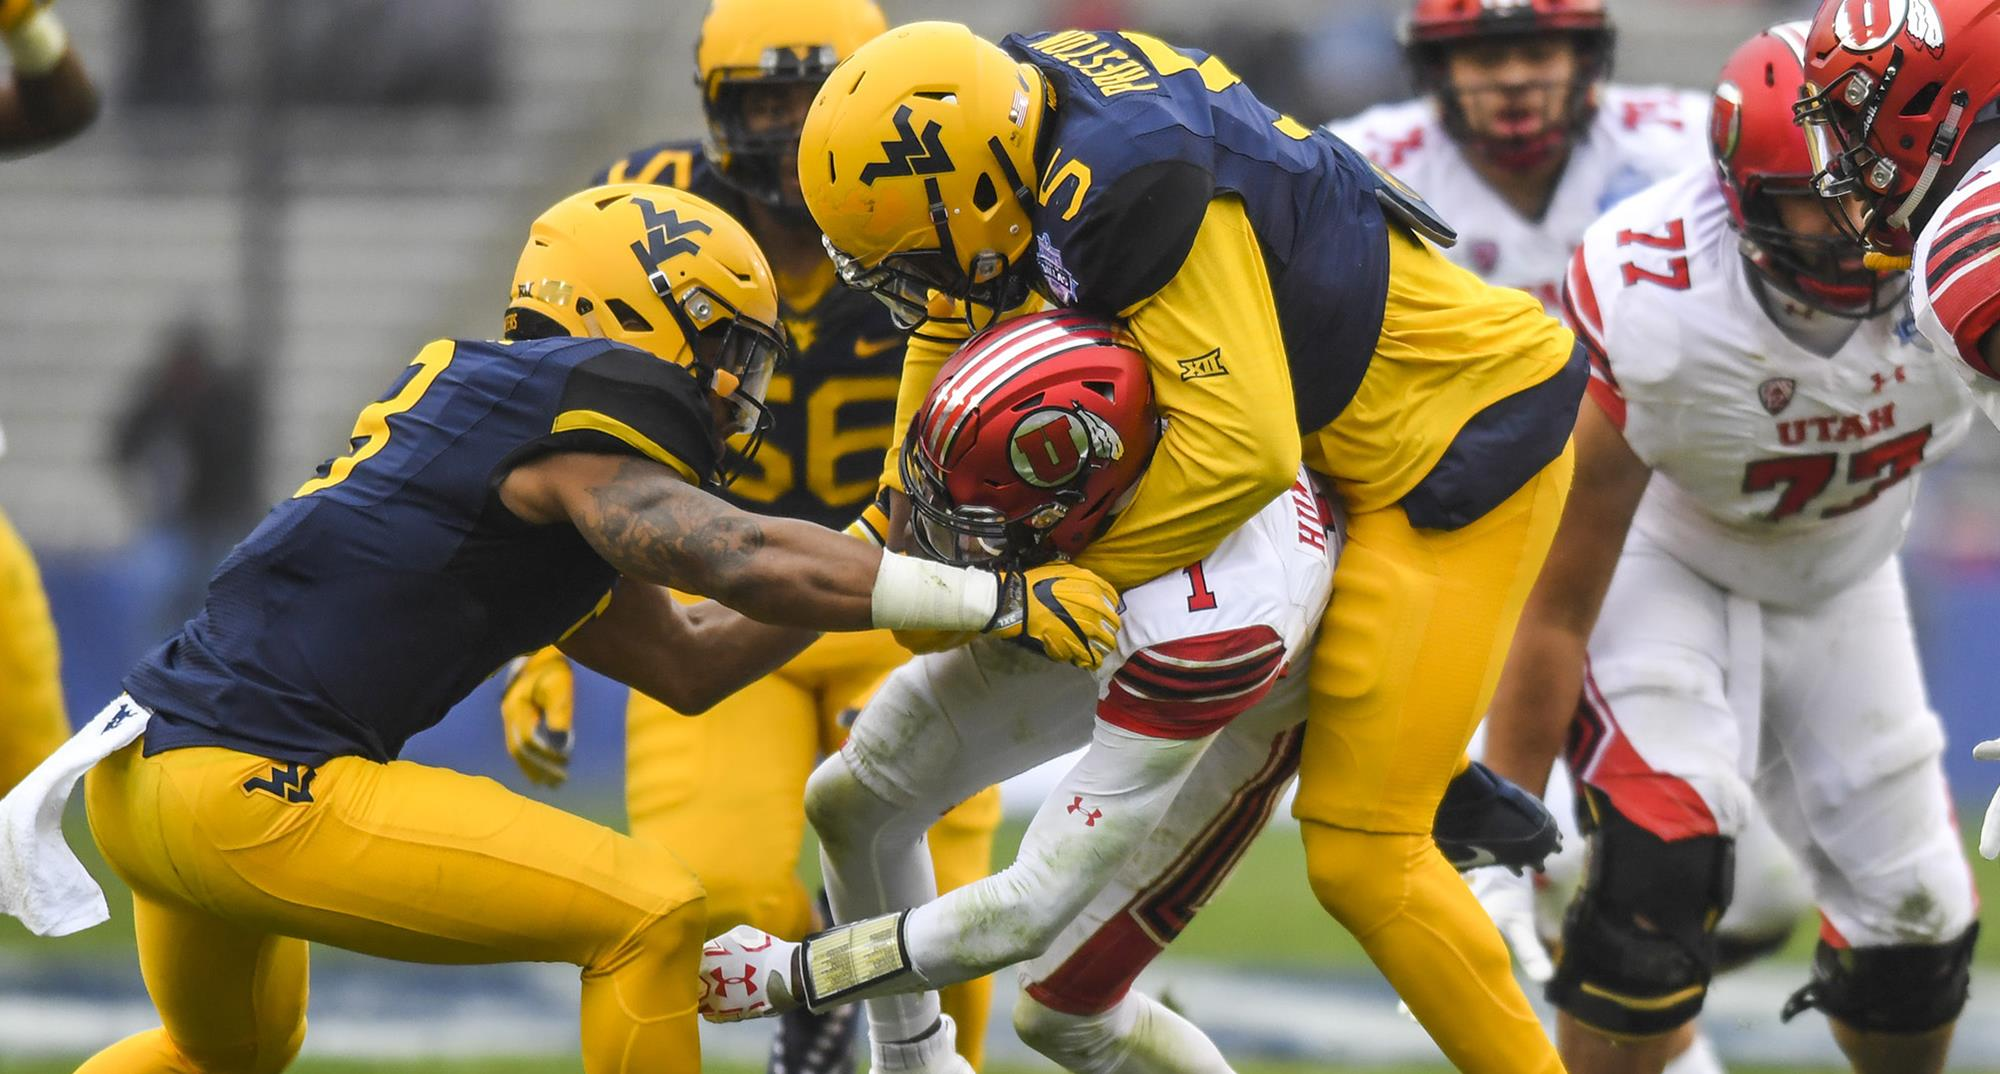 Way Too Early WVU Bowl Projections